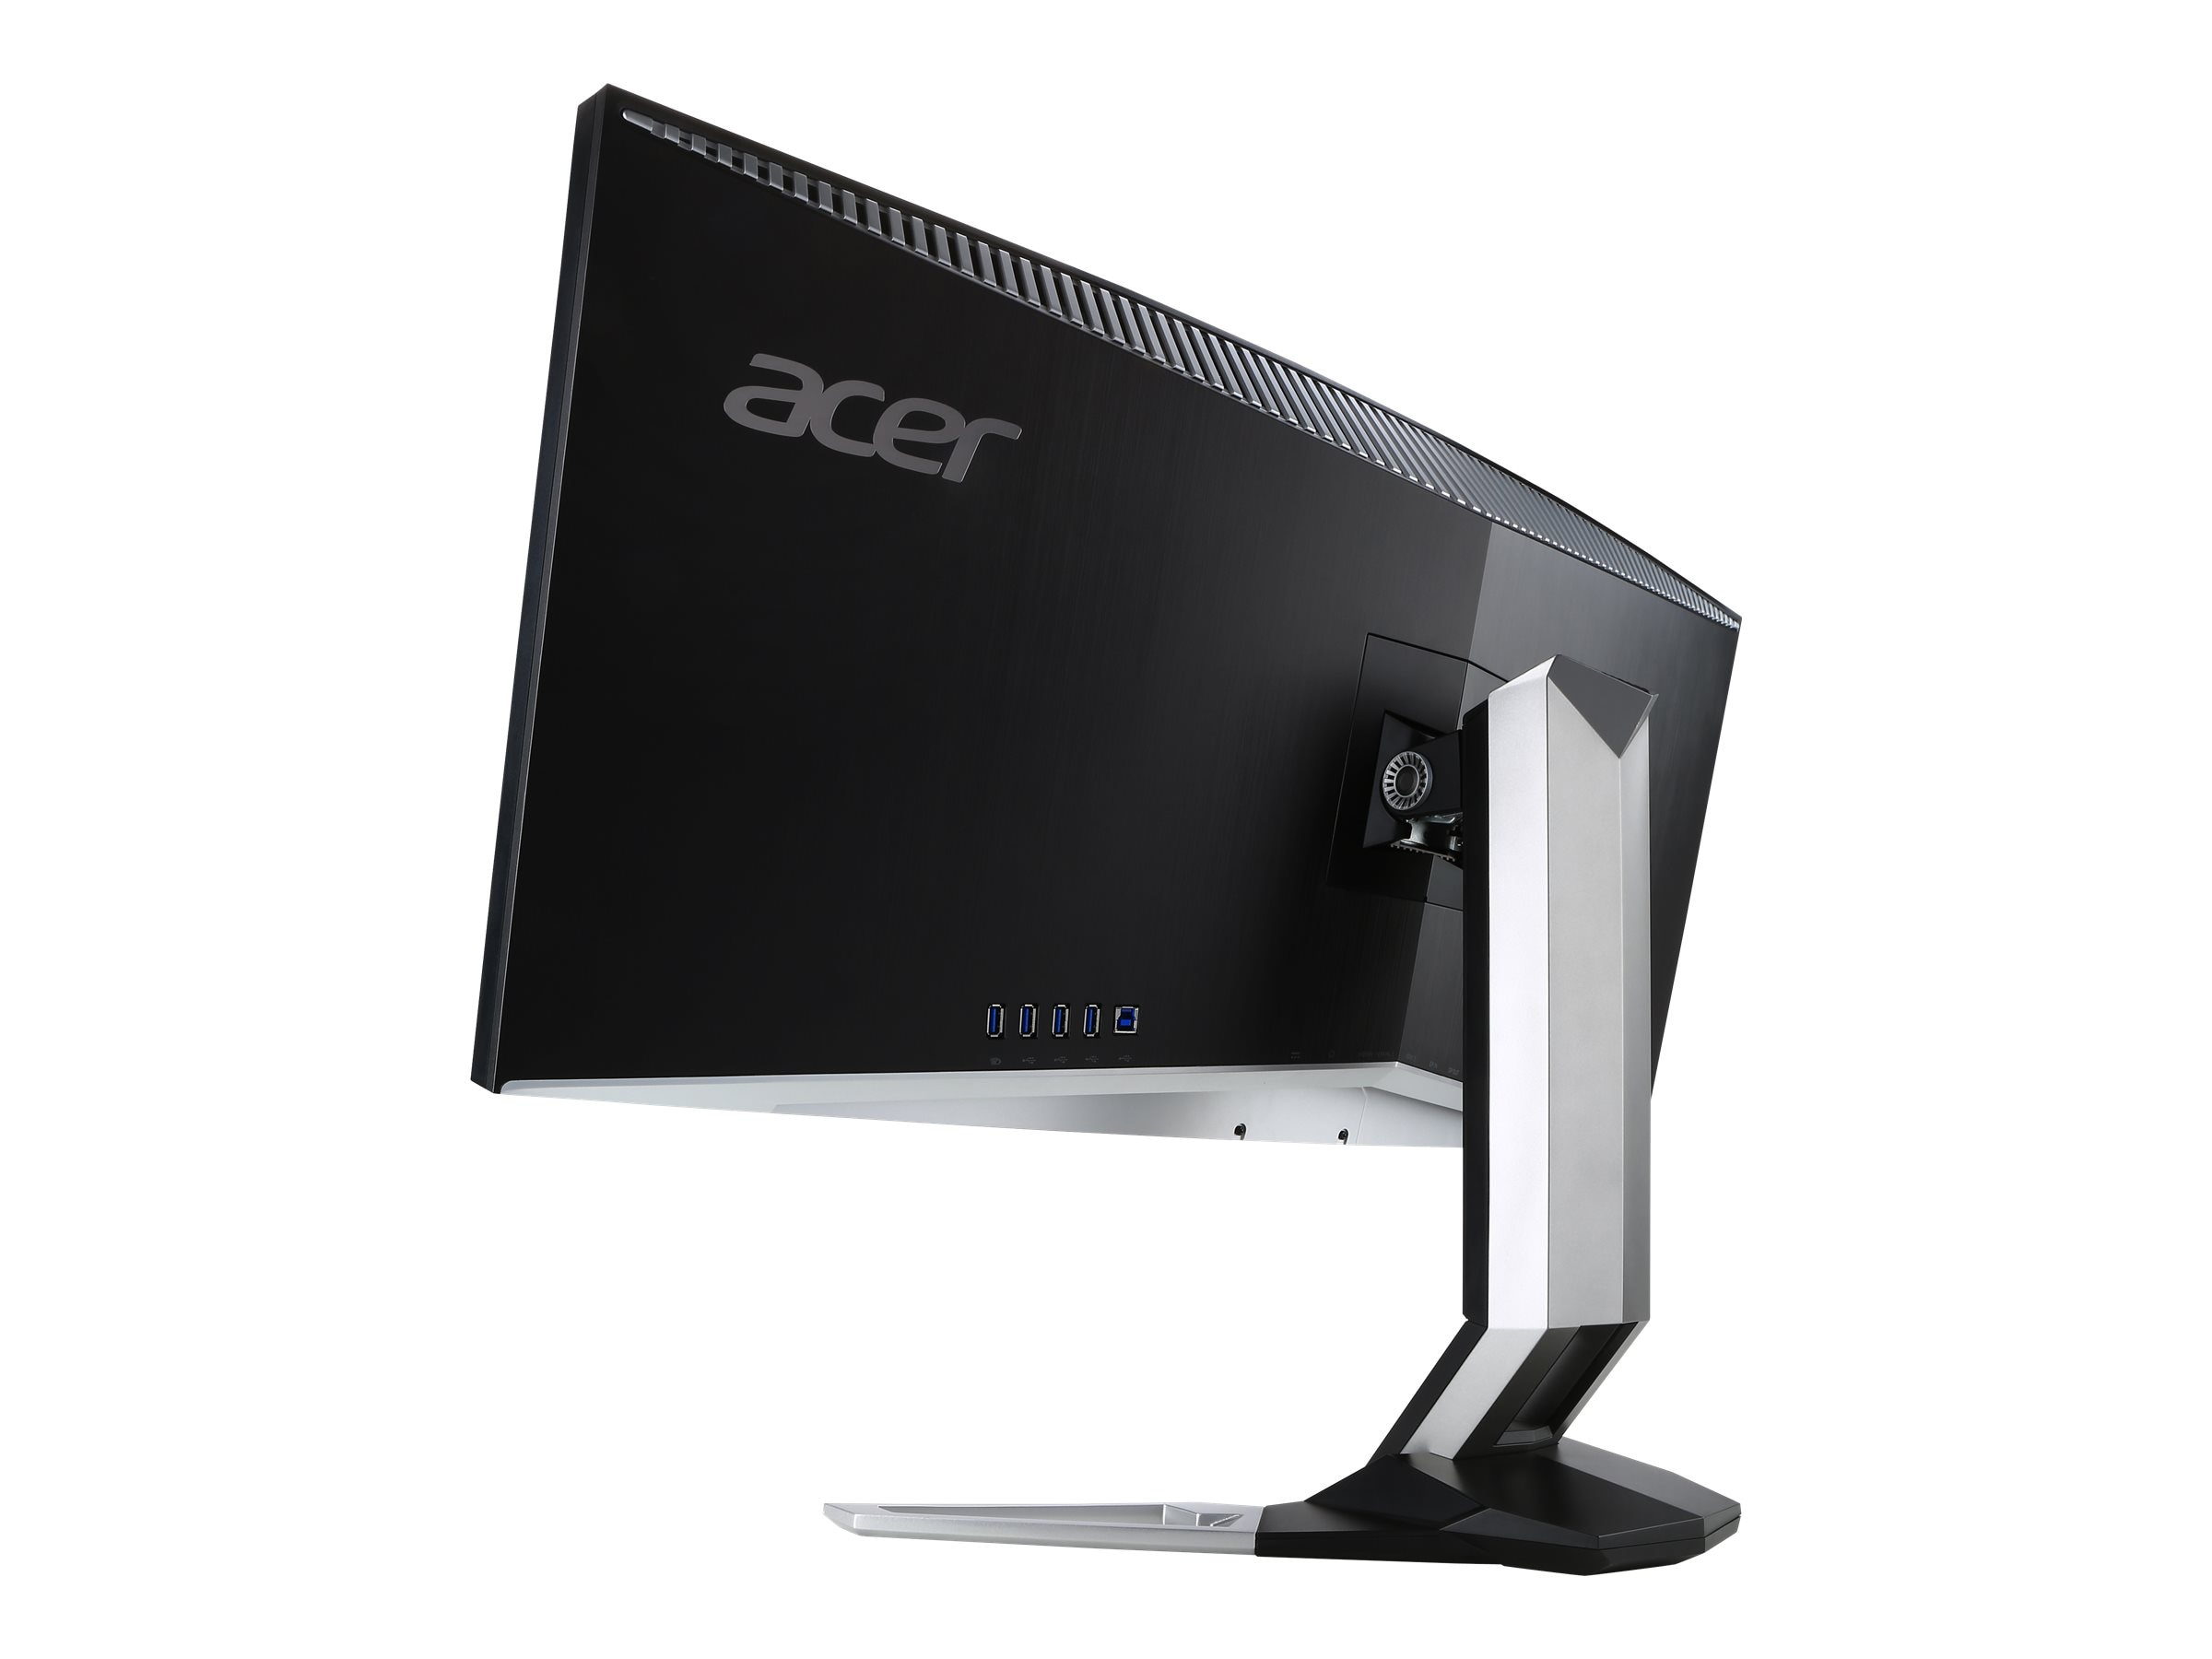 Acer 35 XZ350CU bmijphz Full HD LED-LCD Ultrawide Curved Monitor, Black, UM.CX0AA.001